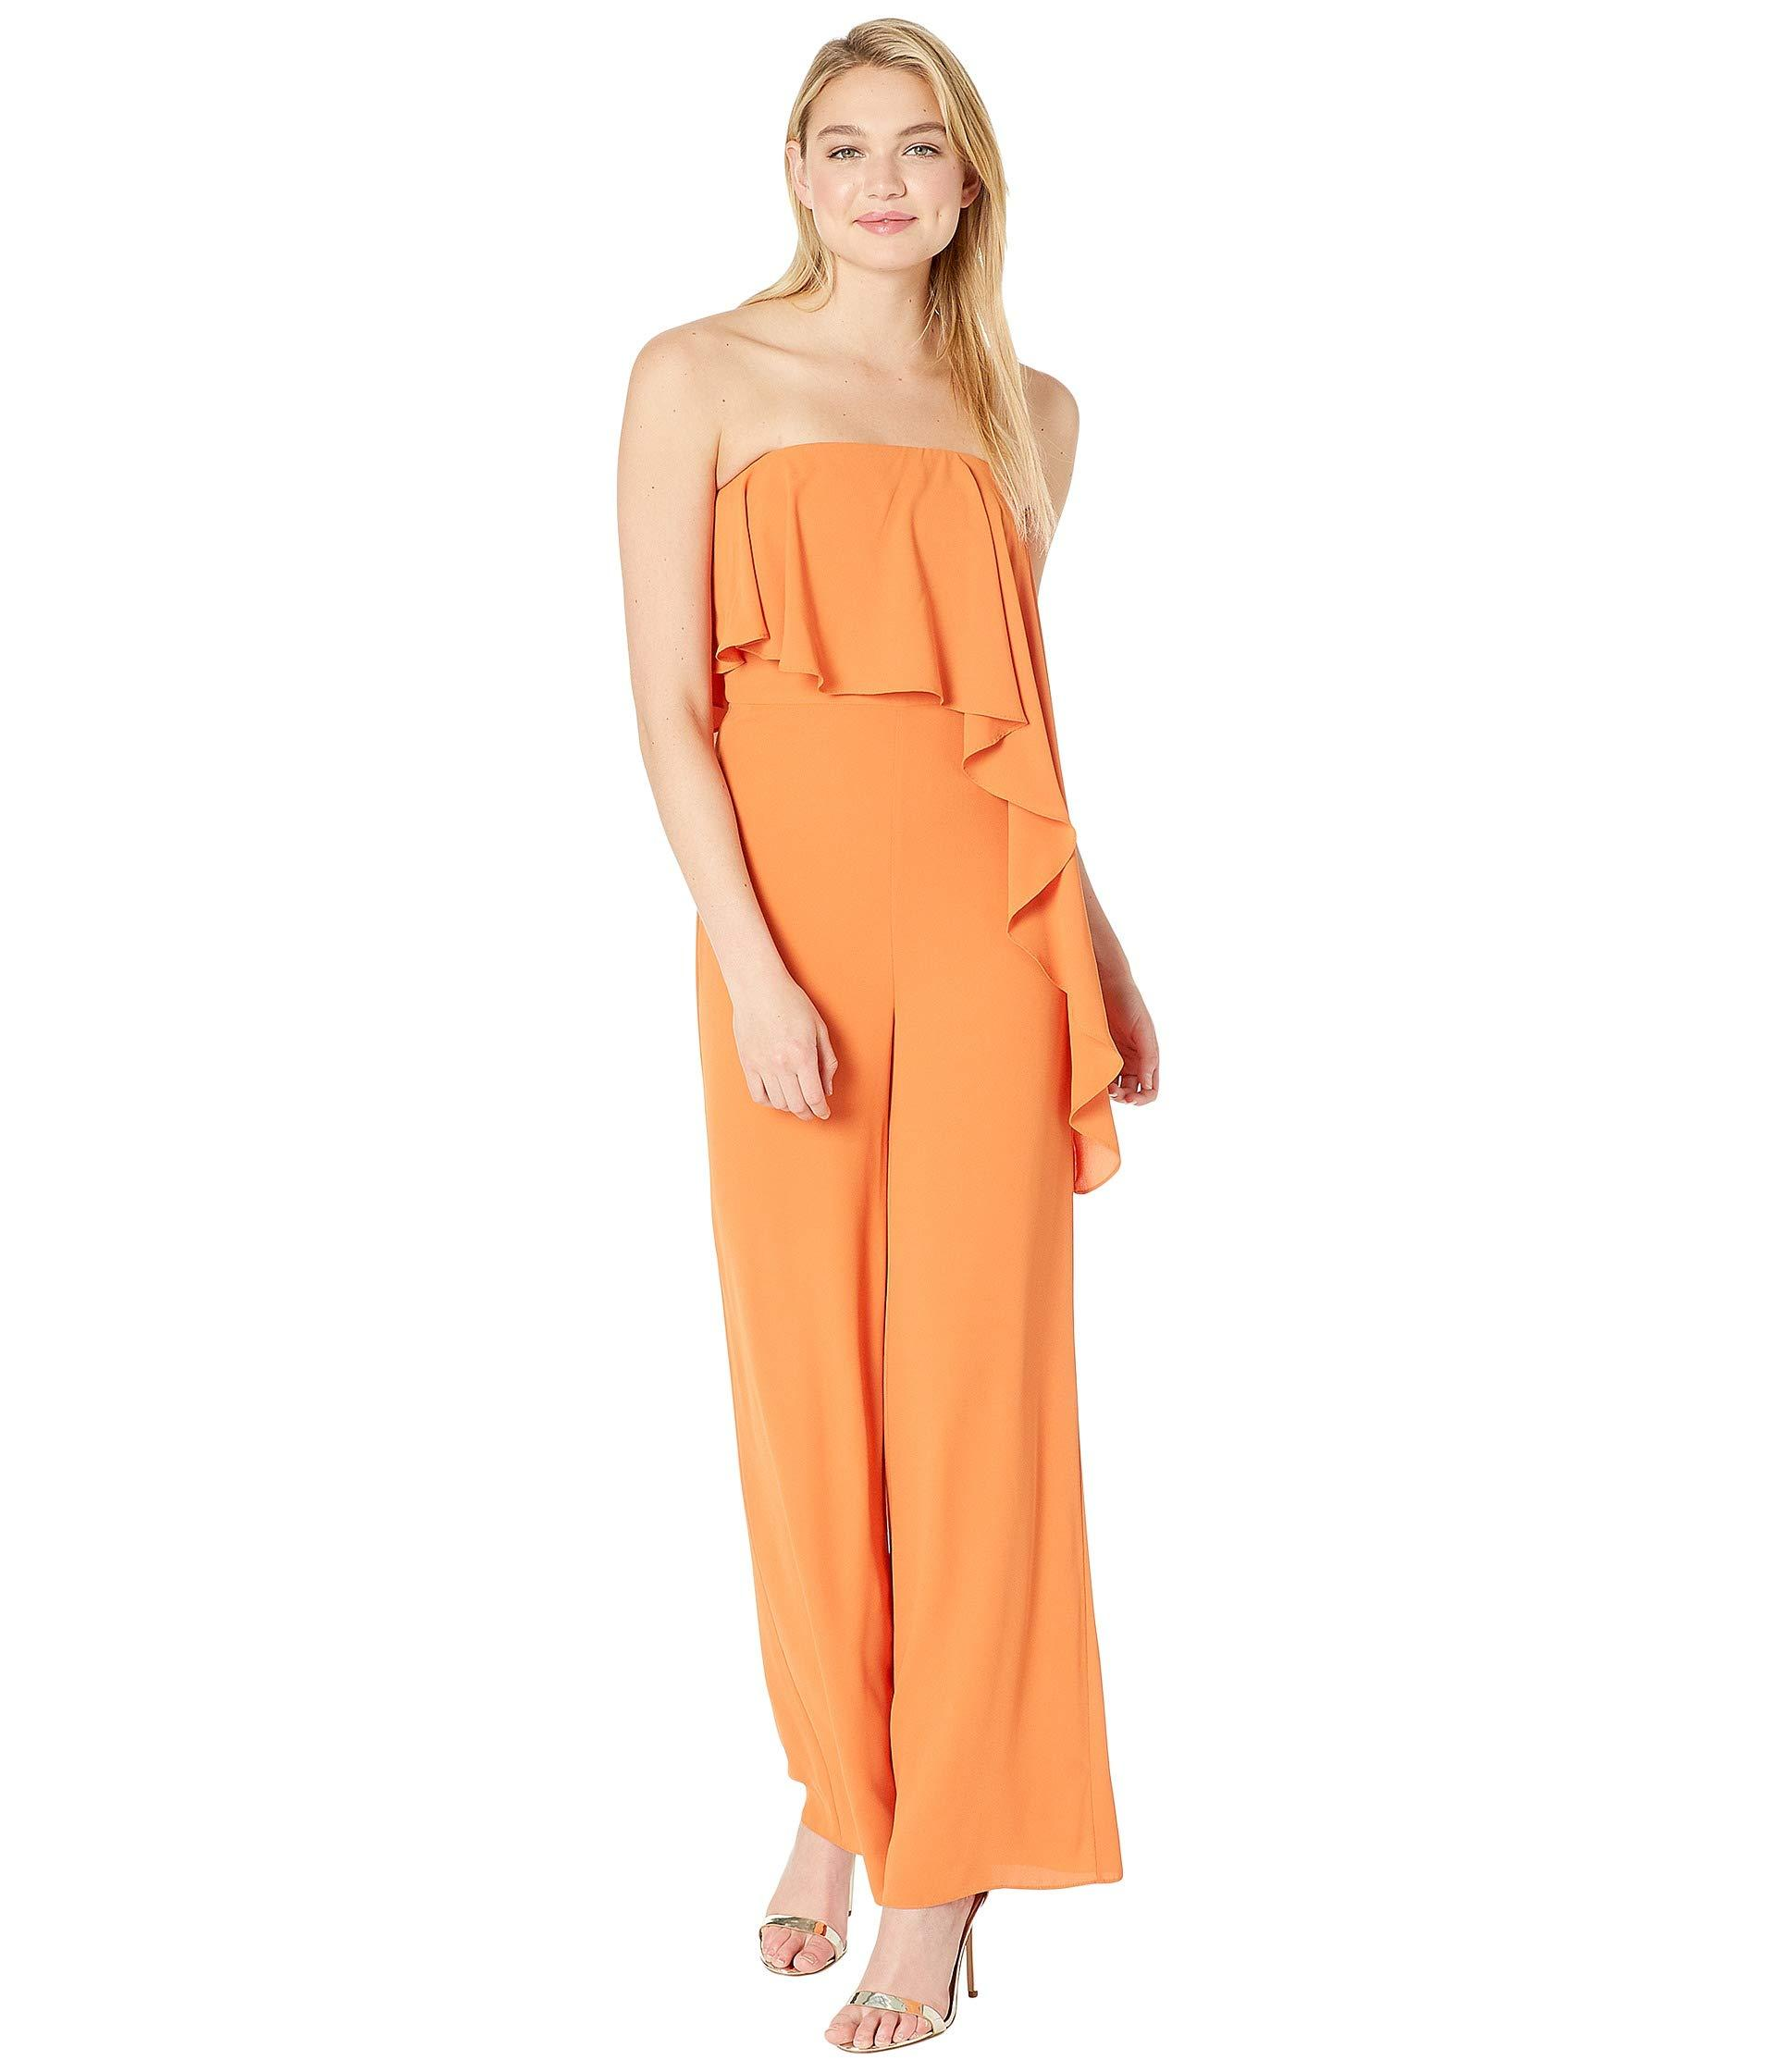 d8f0c5a604e3 Halston. Orange Strapless Wide Leg Jumpsuit With Flounce Overlay ...